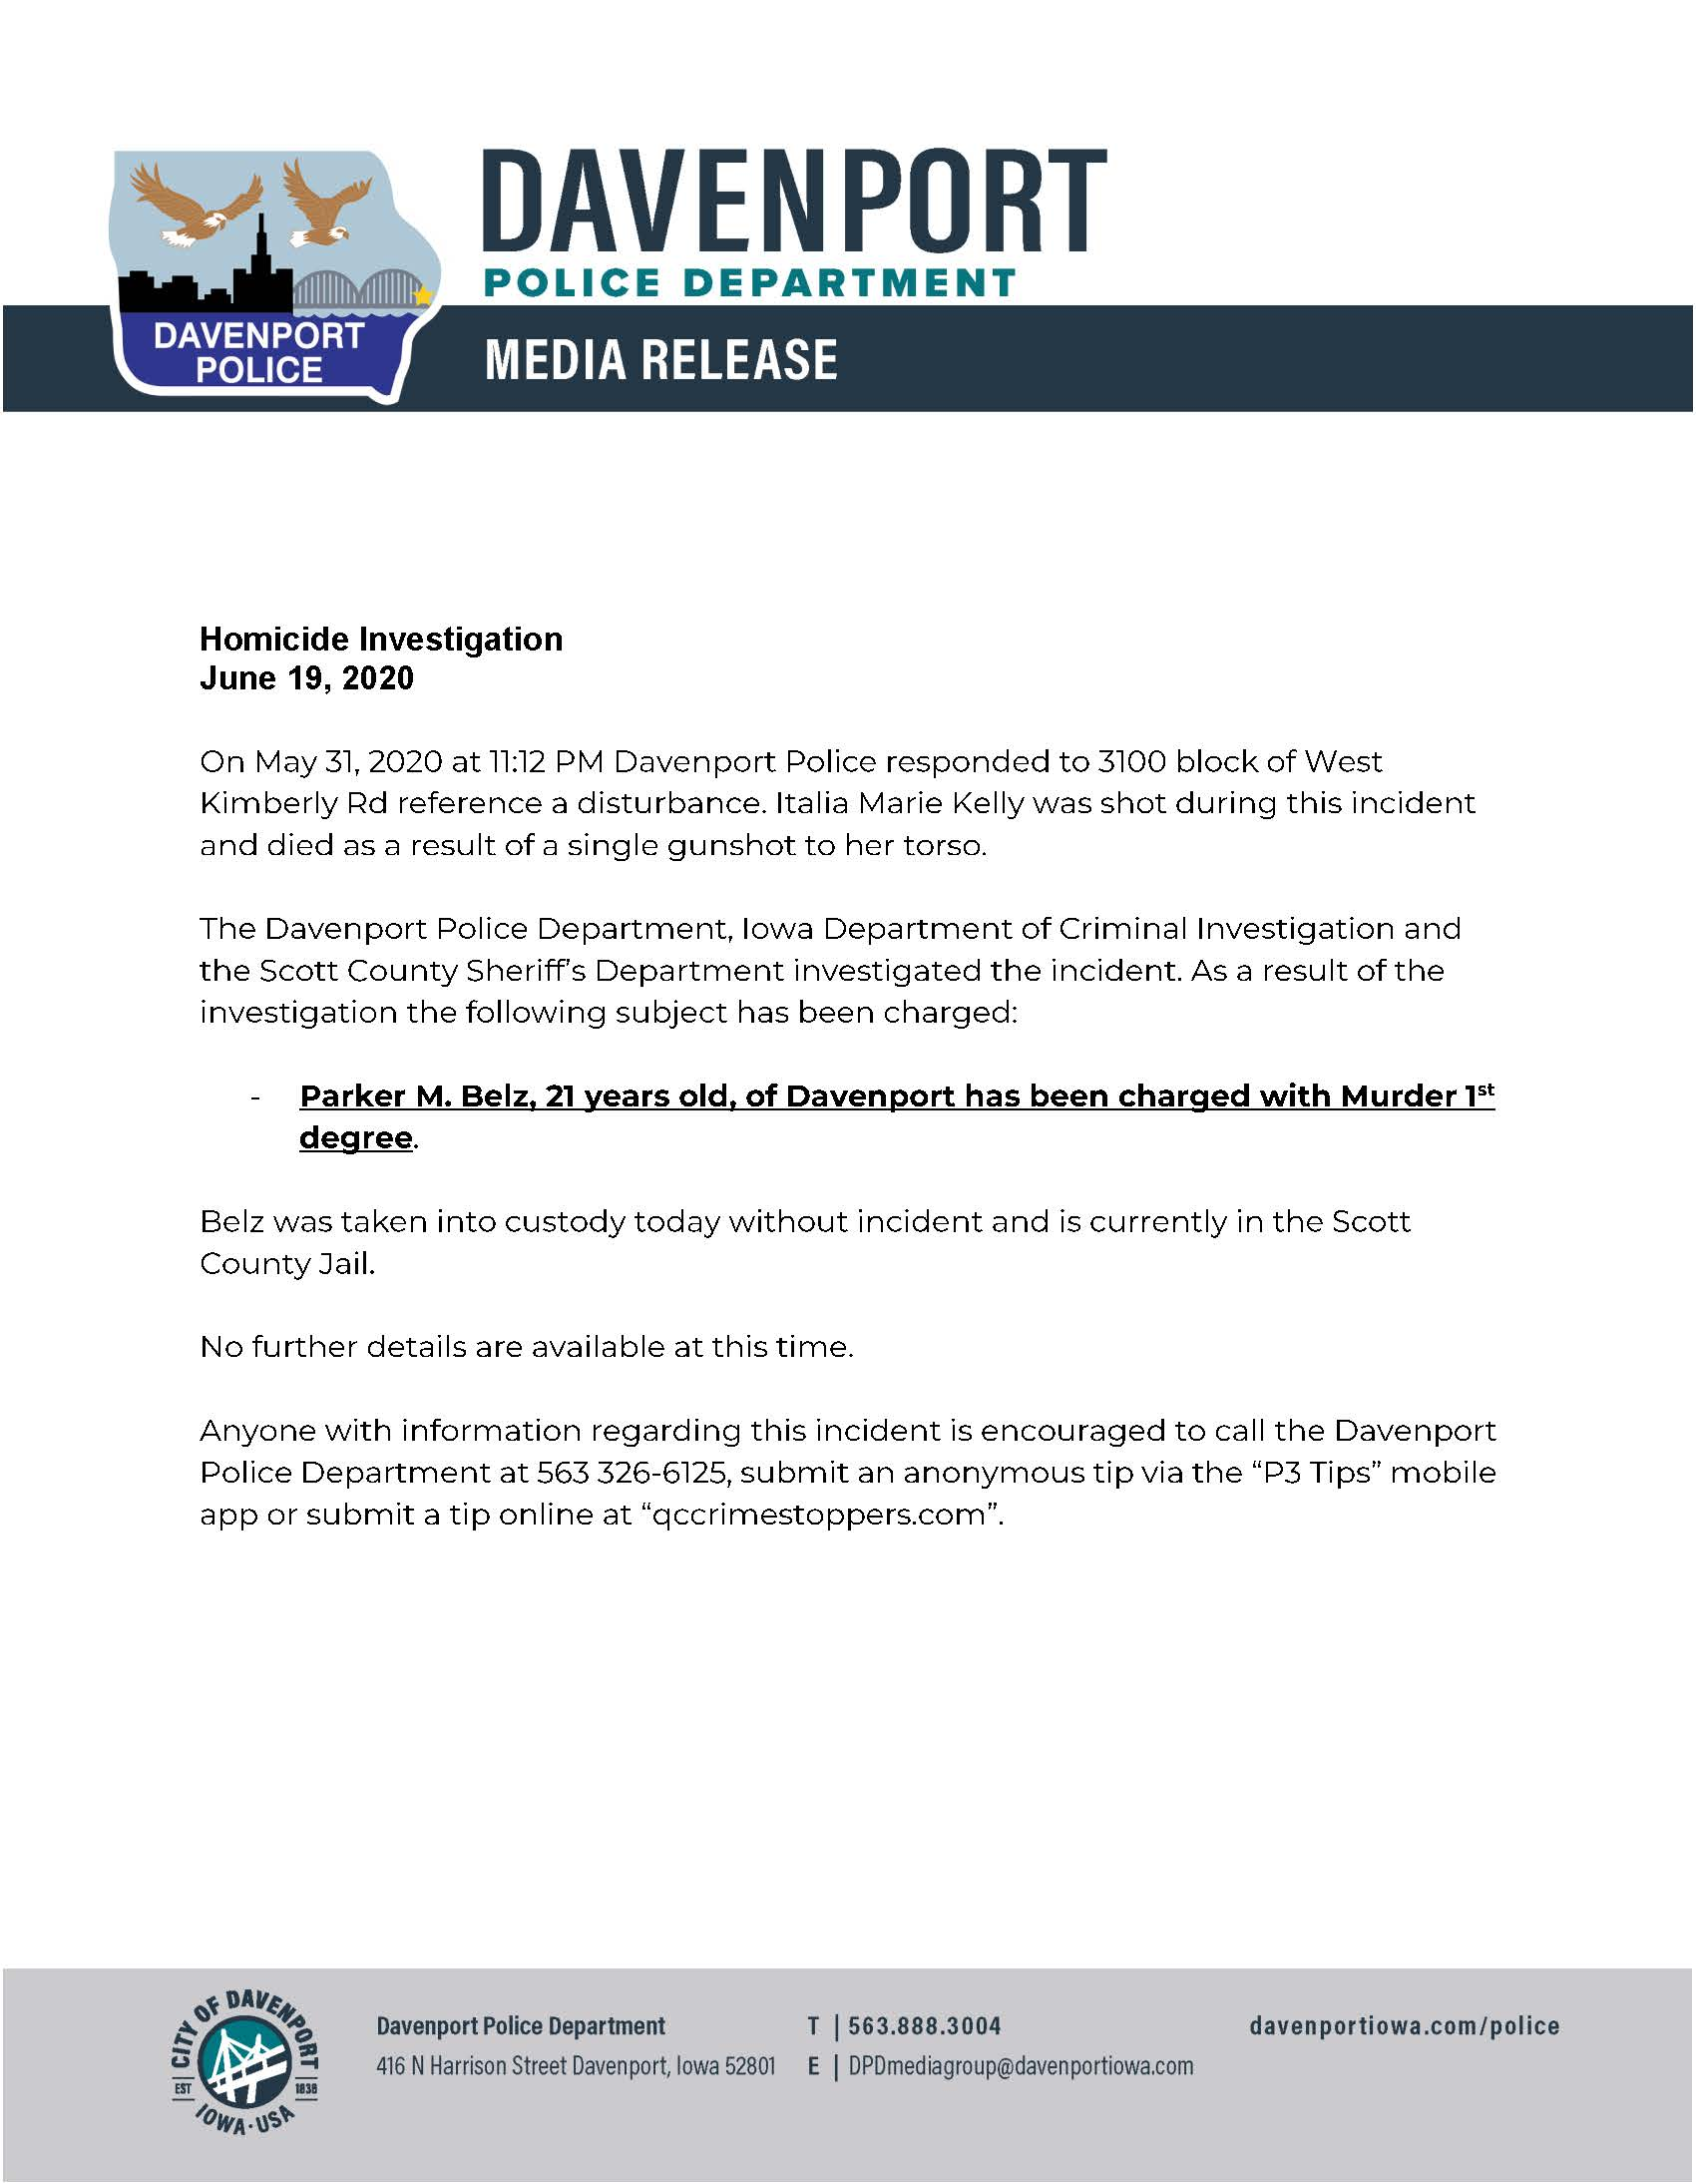 Link to press release on double homicide of June 2020 from Davenport Police Department.